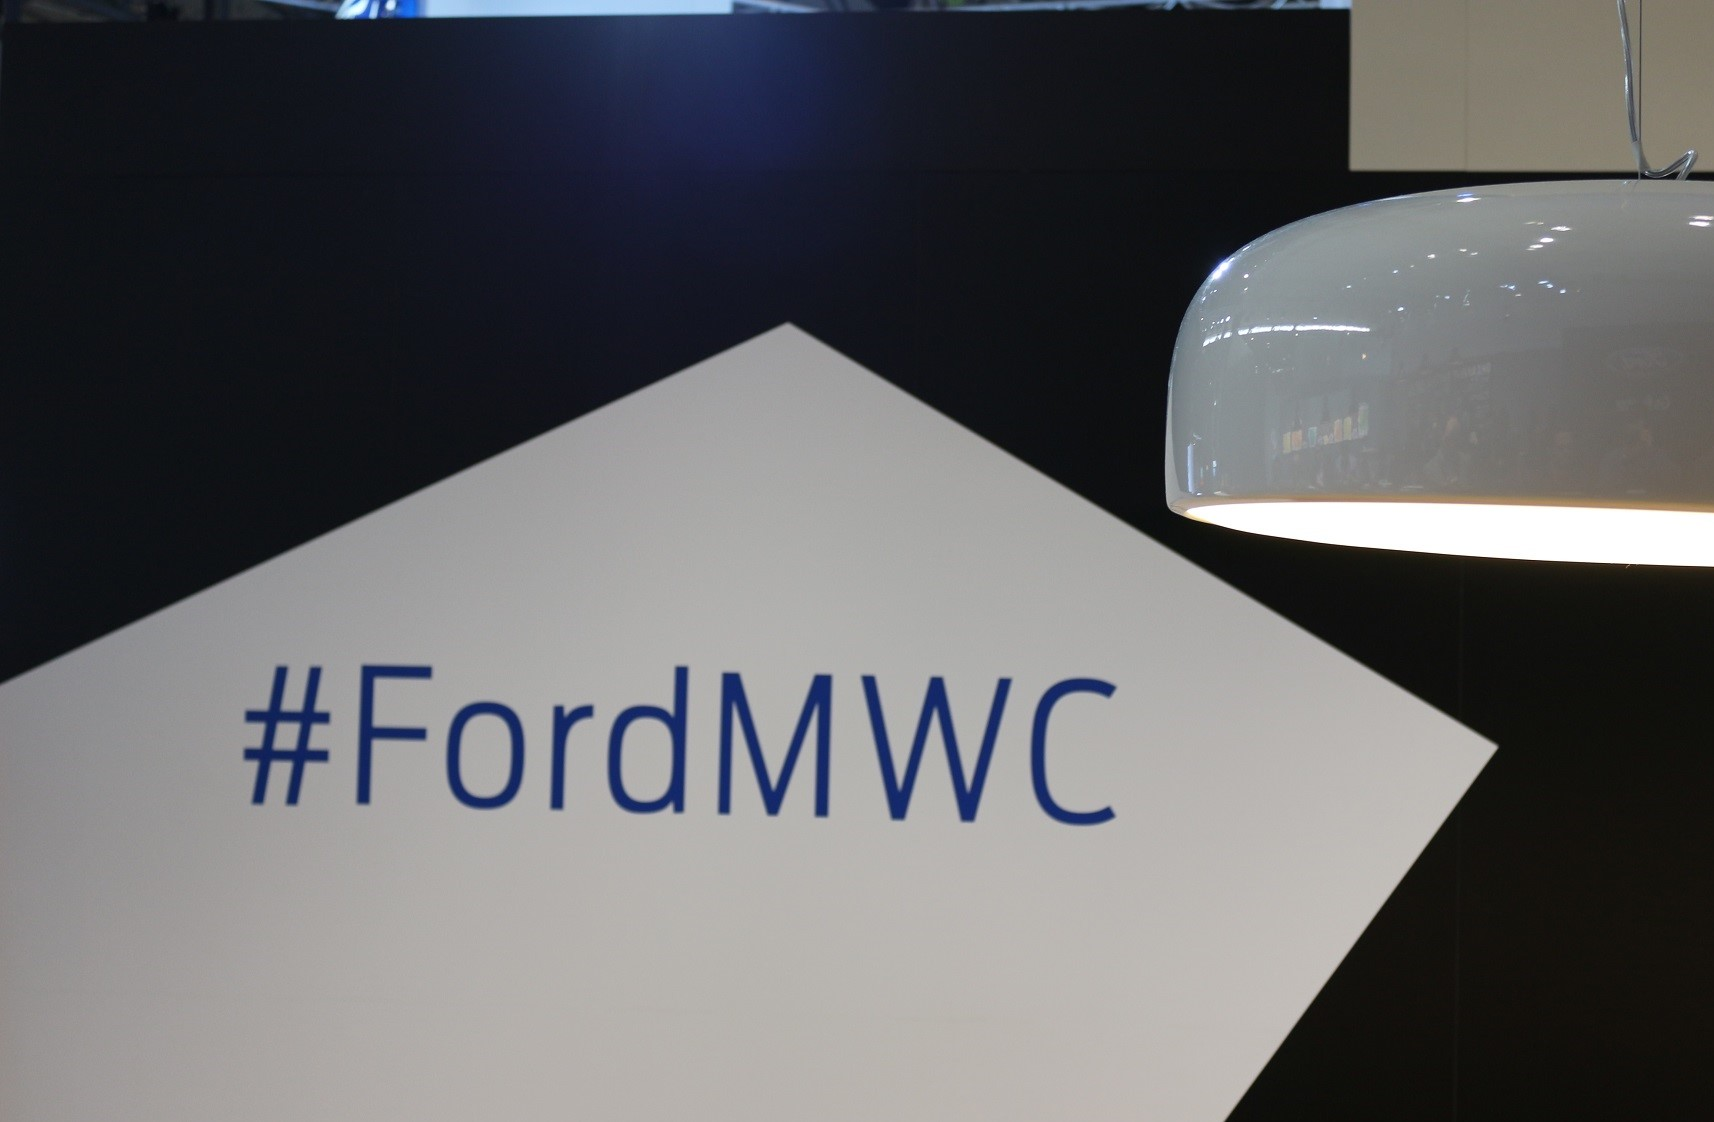 Ford MWC 2017